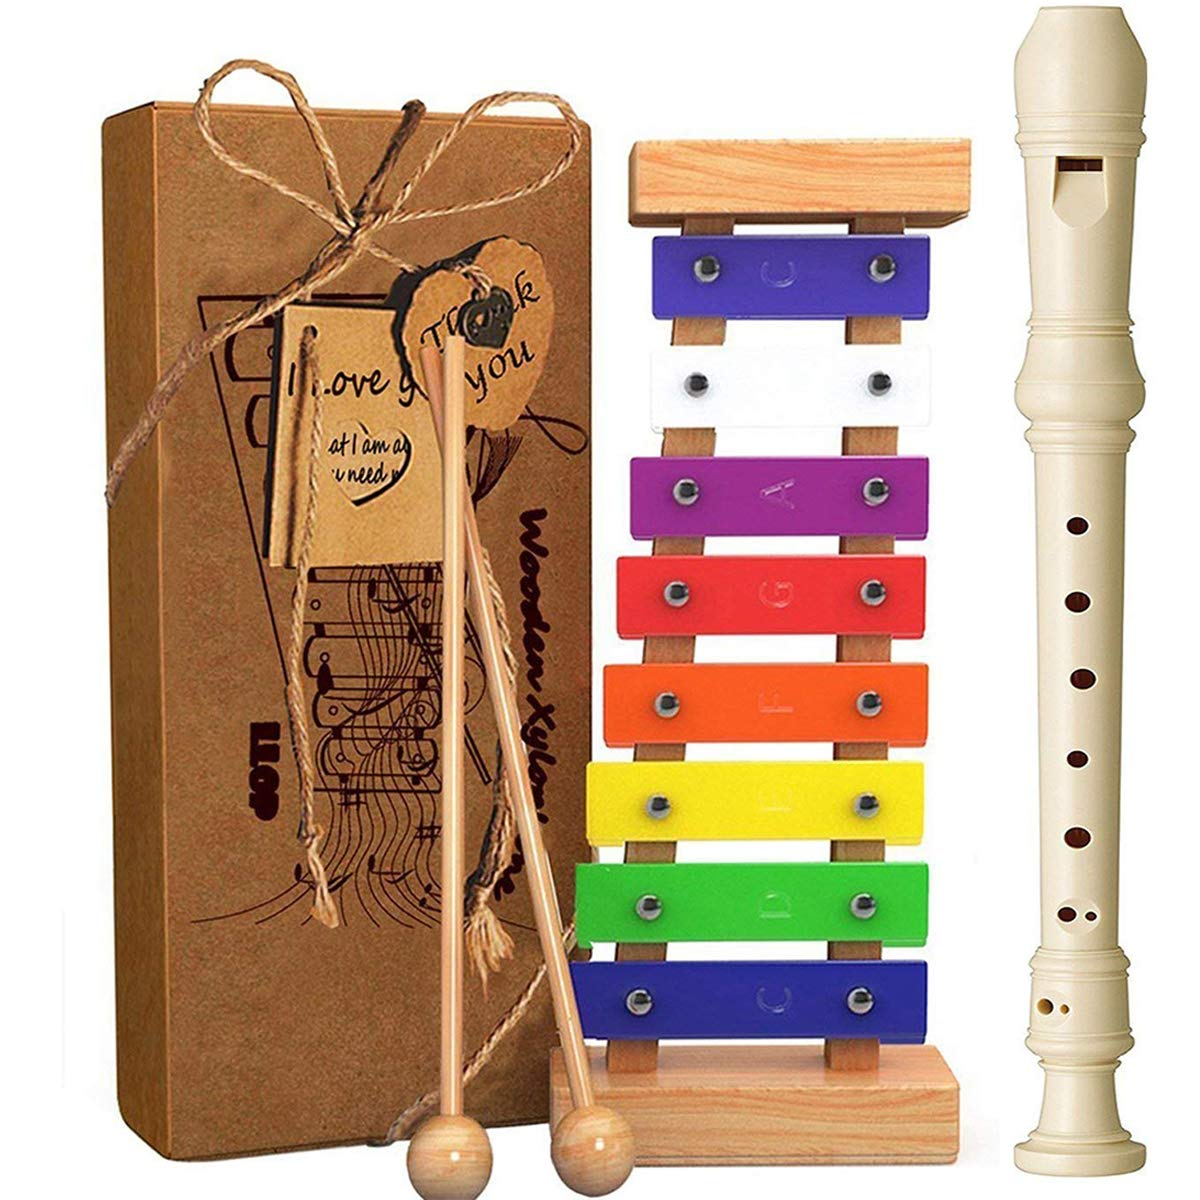 Llop Xylophone For Kids Best Holiday Birthday Diy Idea Musical Toy With Child Safe Mallets Perfectly Tuned Instrument Toddlers Cards And A Free